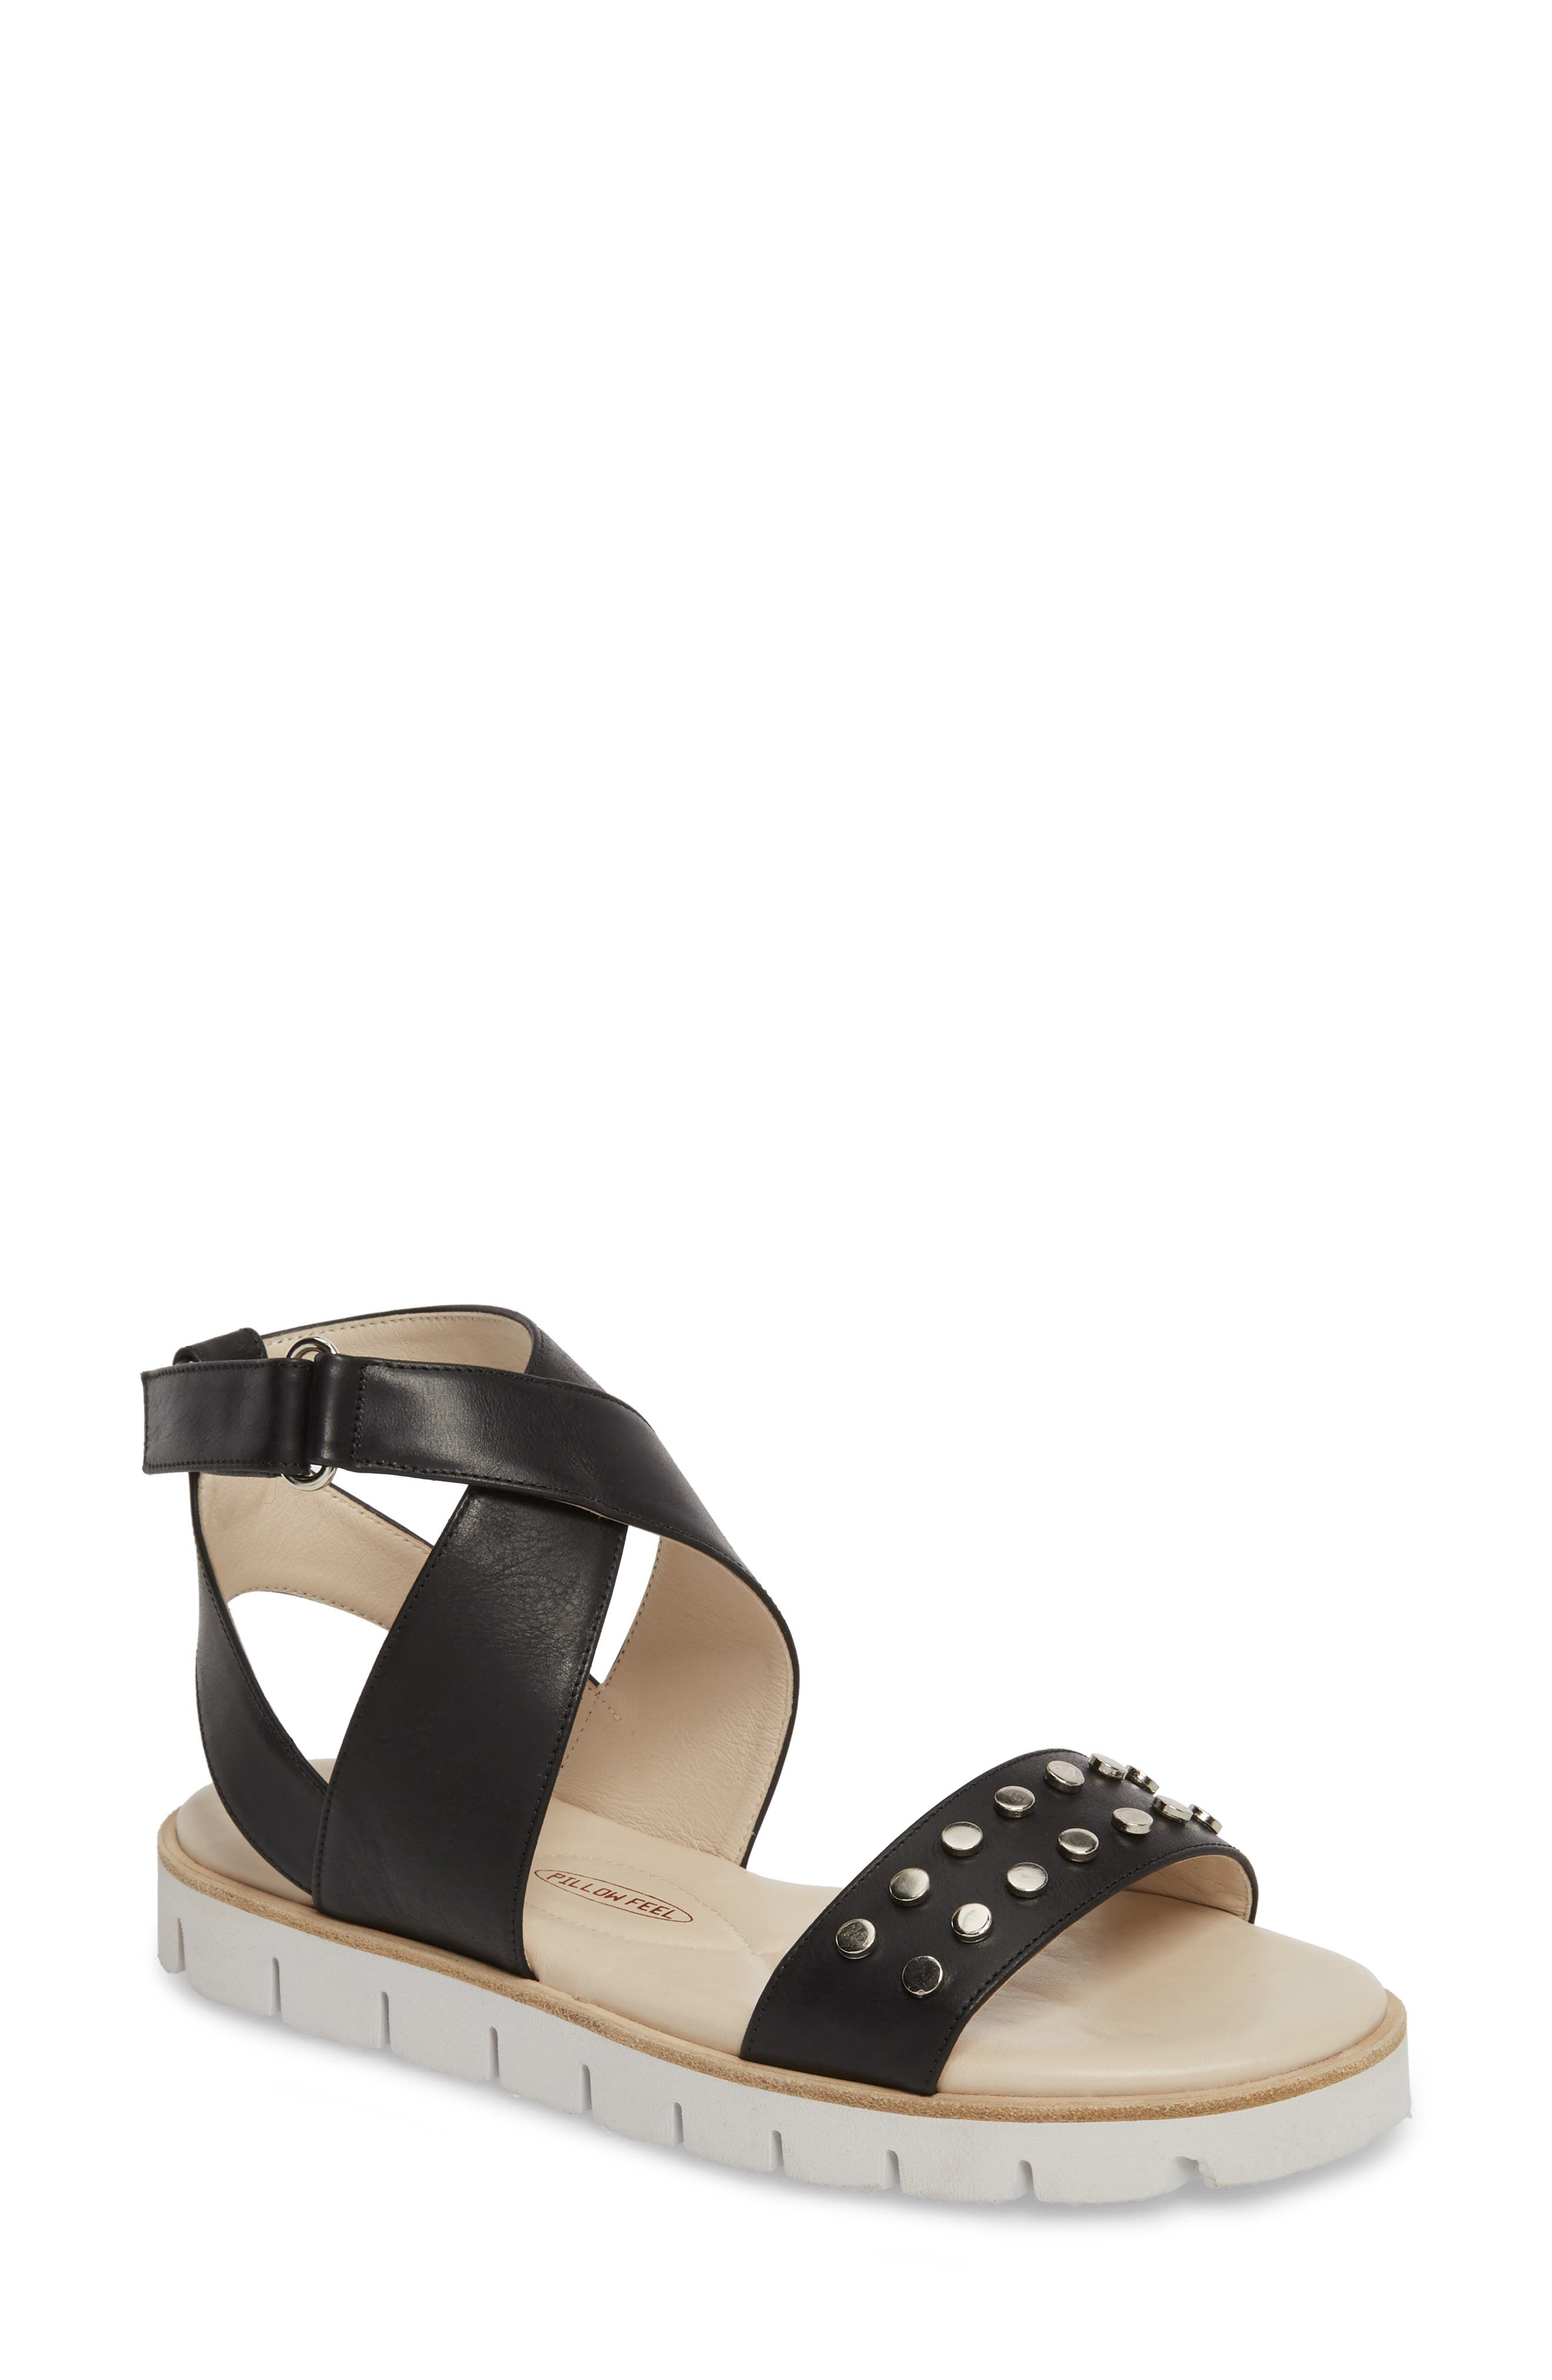 Barlume Sandal,                         Main,                         color, BLACK LEATHER